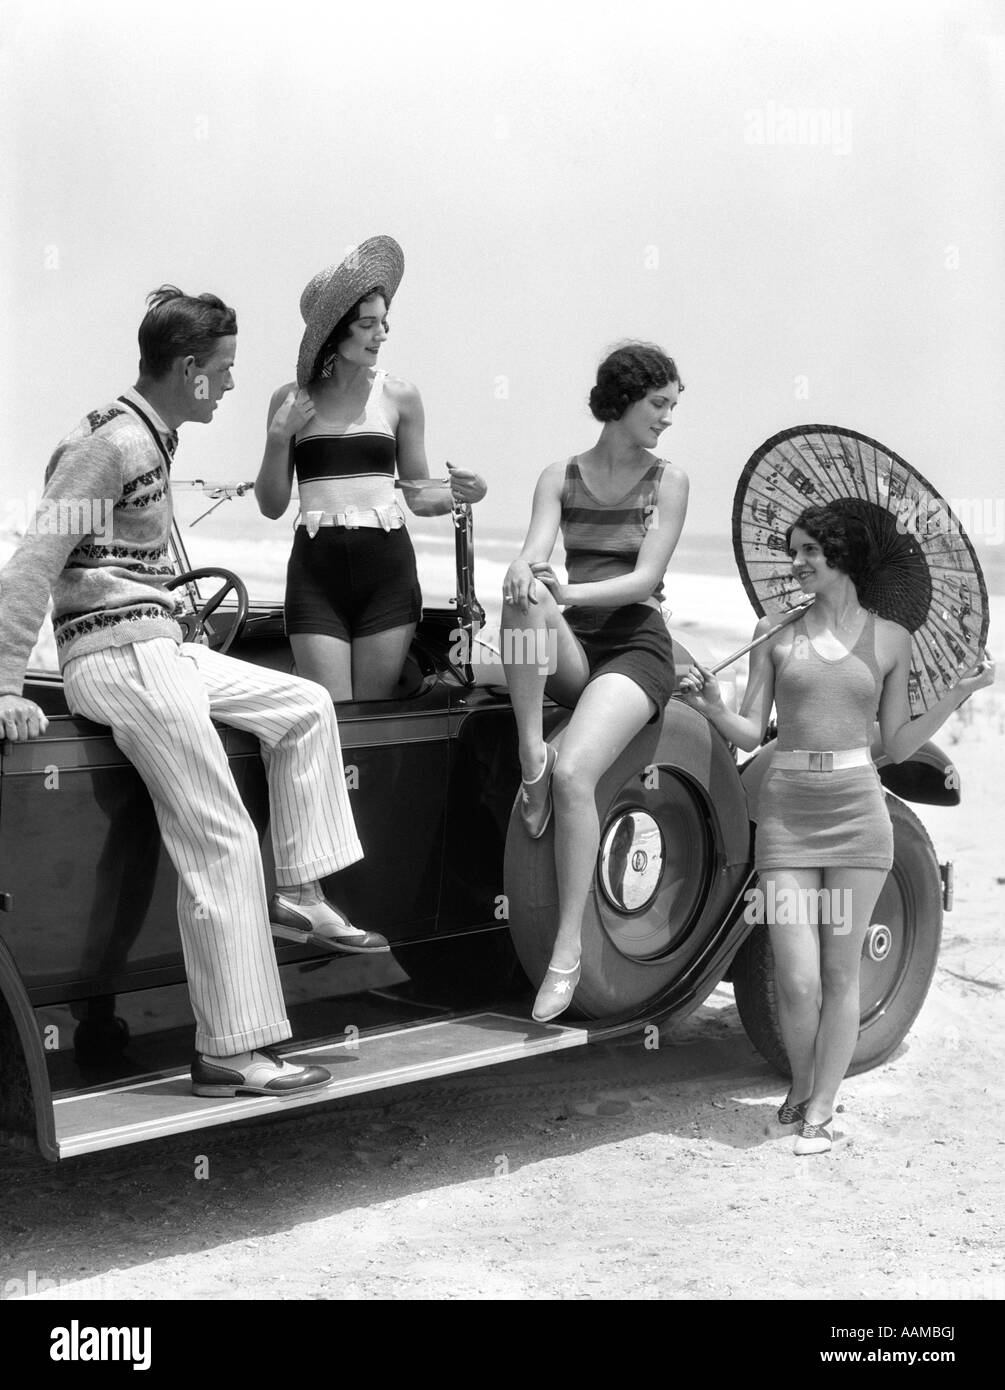 1920s 1930s Man And Three Women In Beach Clothes Or